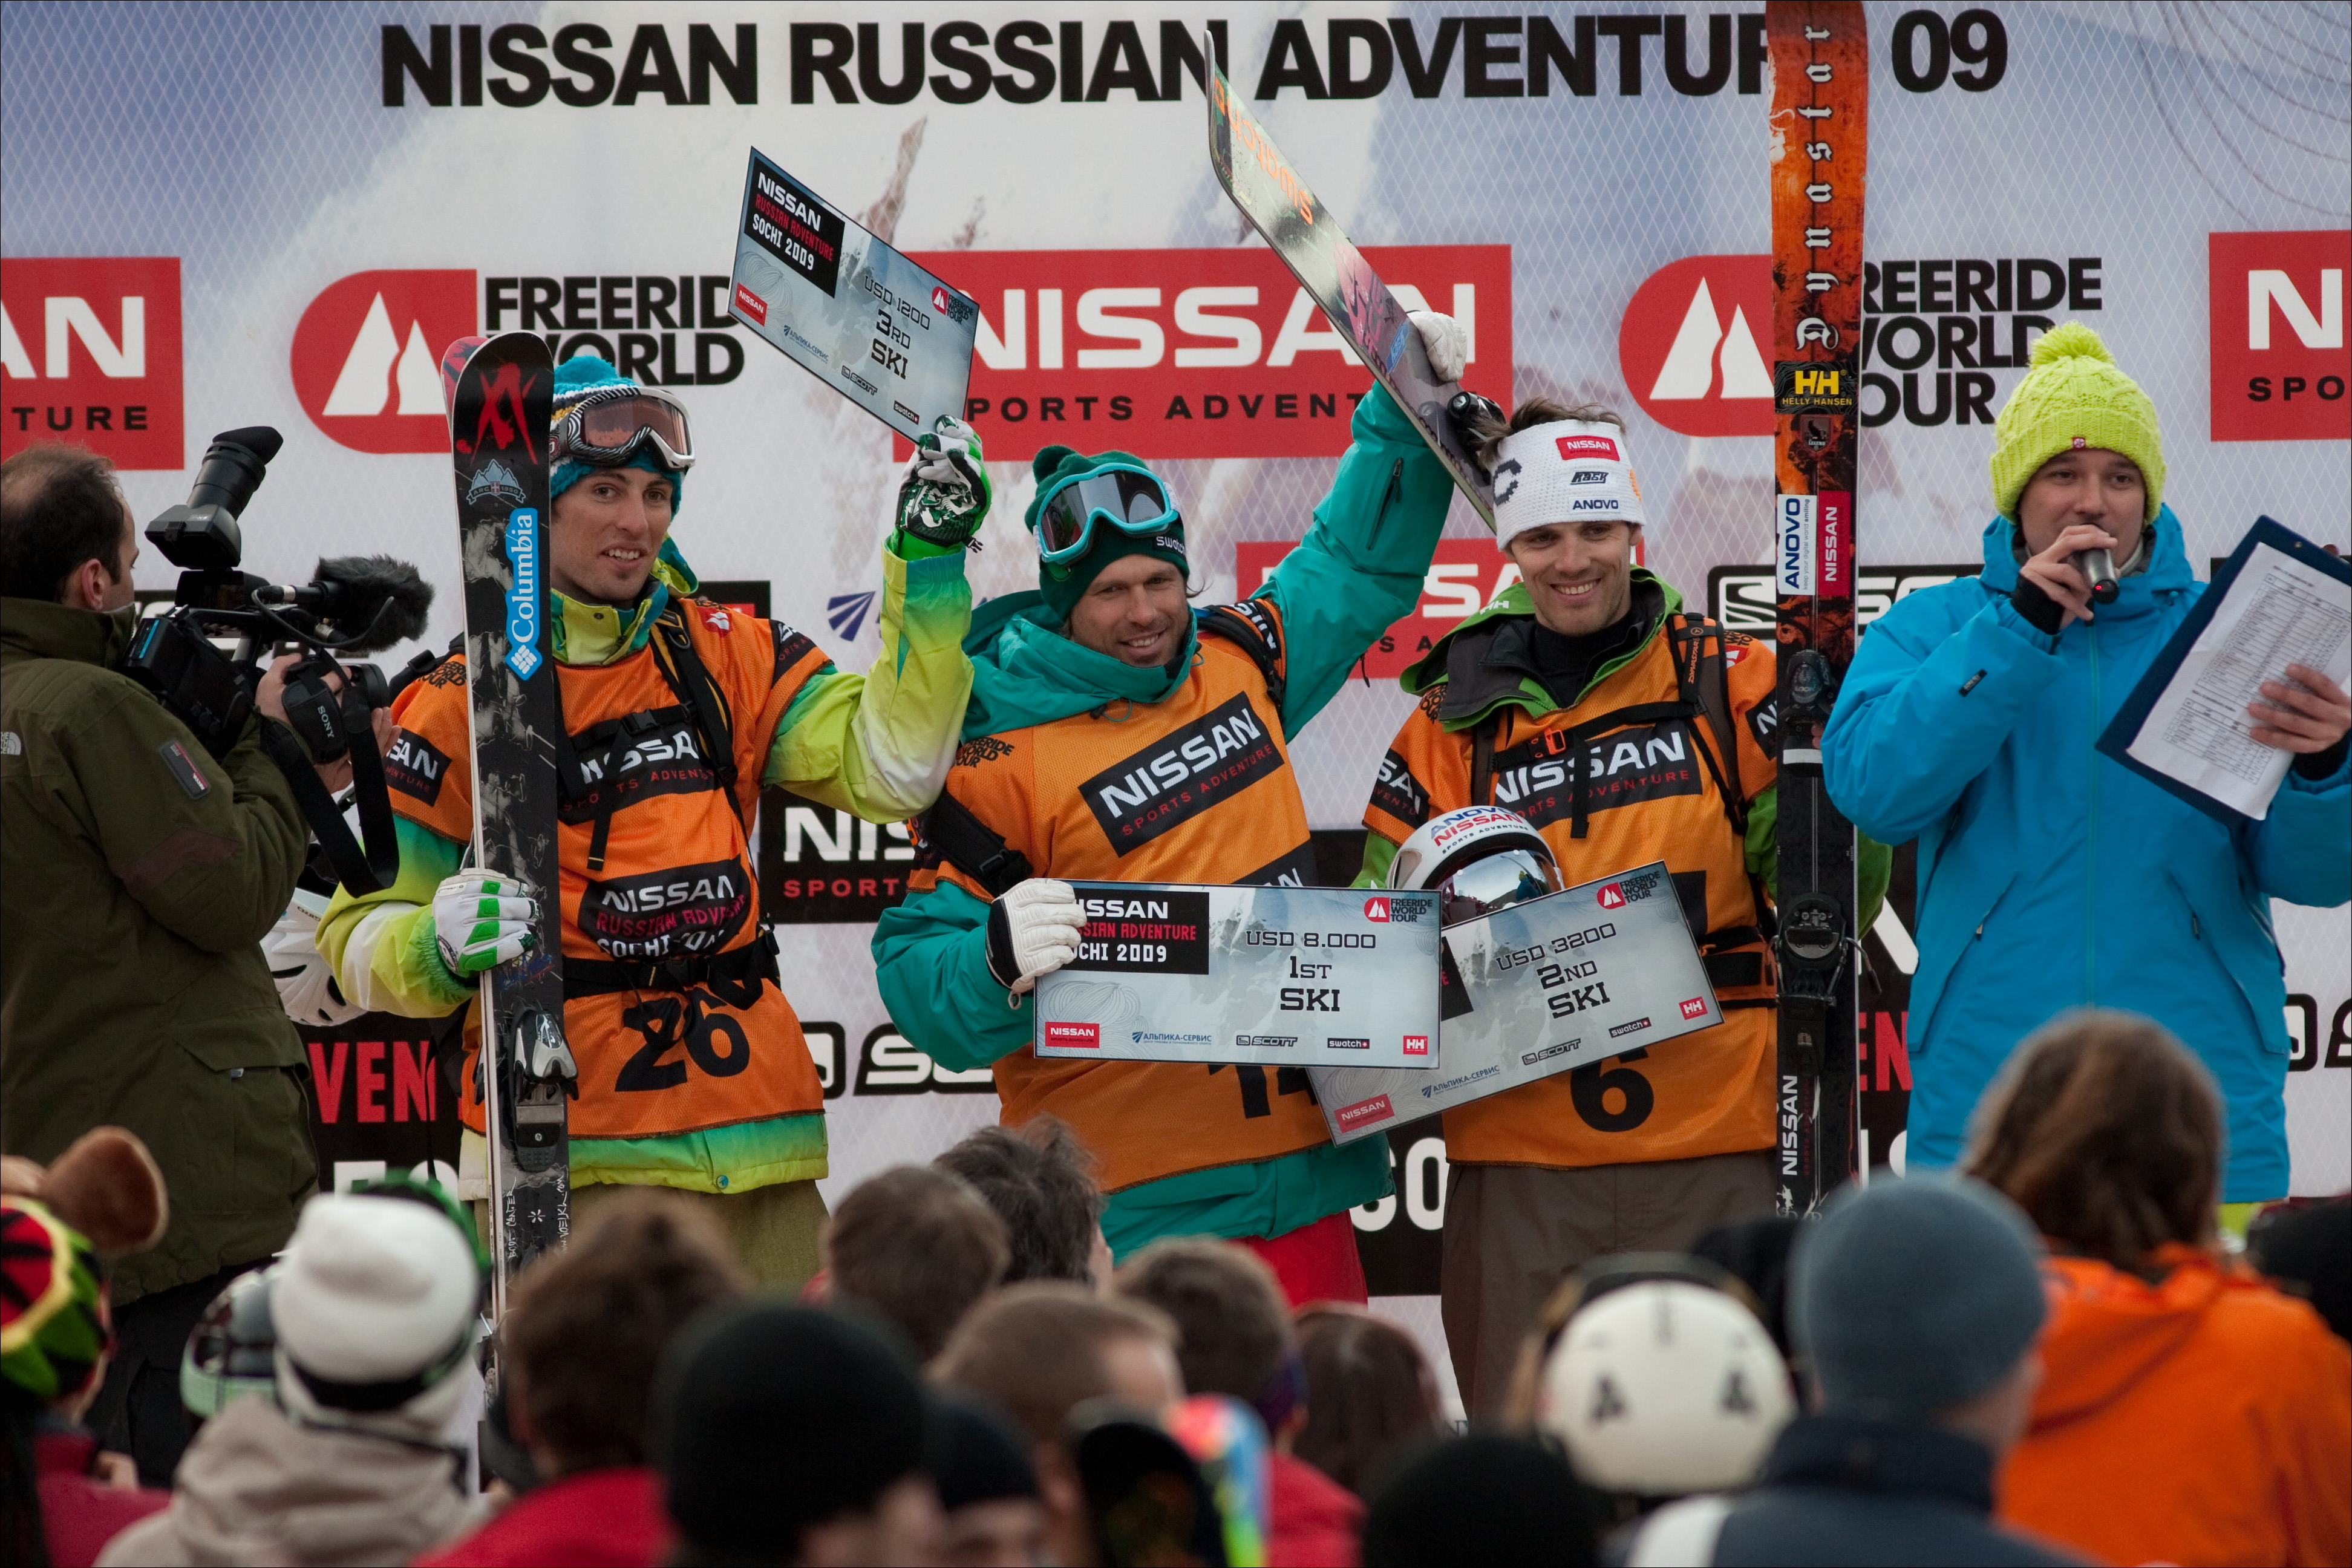 Russia Freeride World Tour Stop #1 Went Off